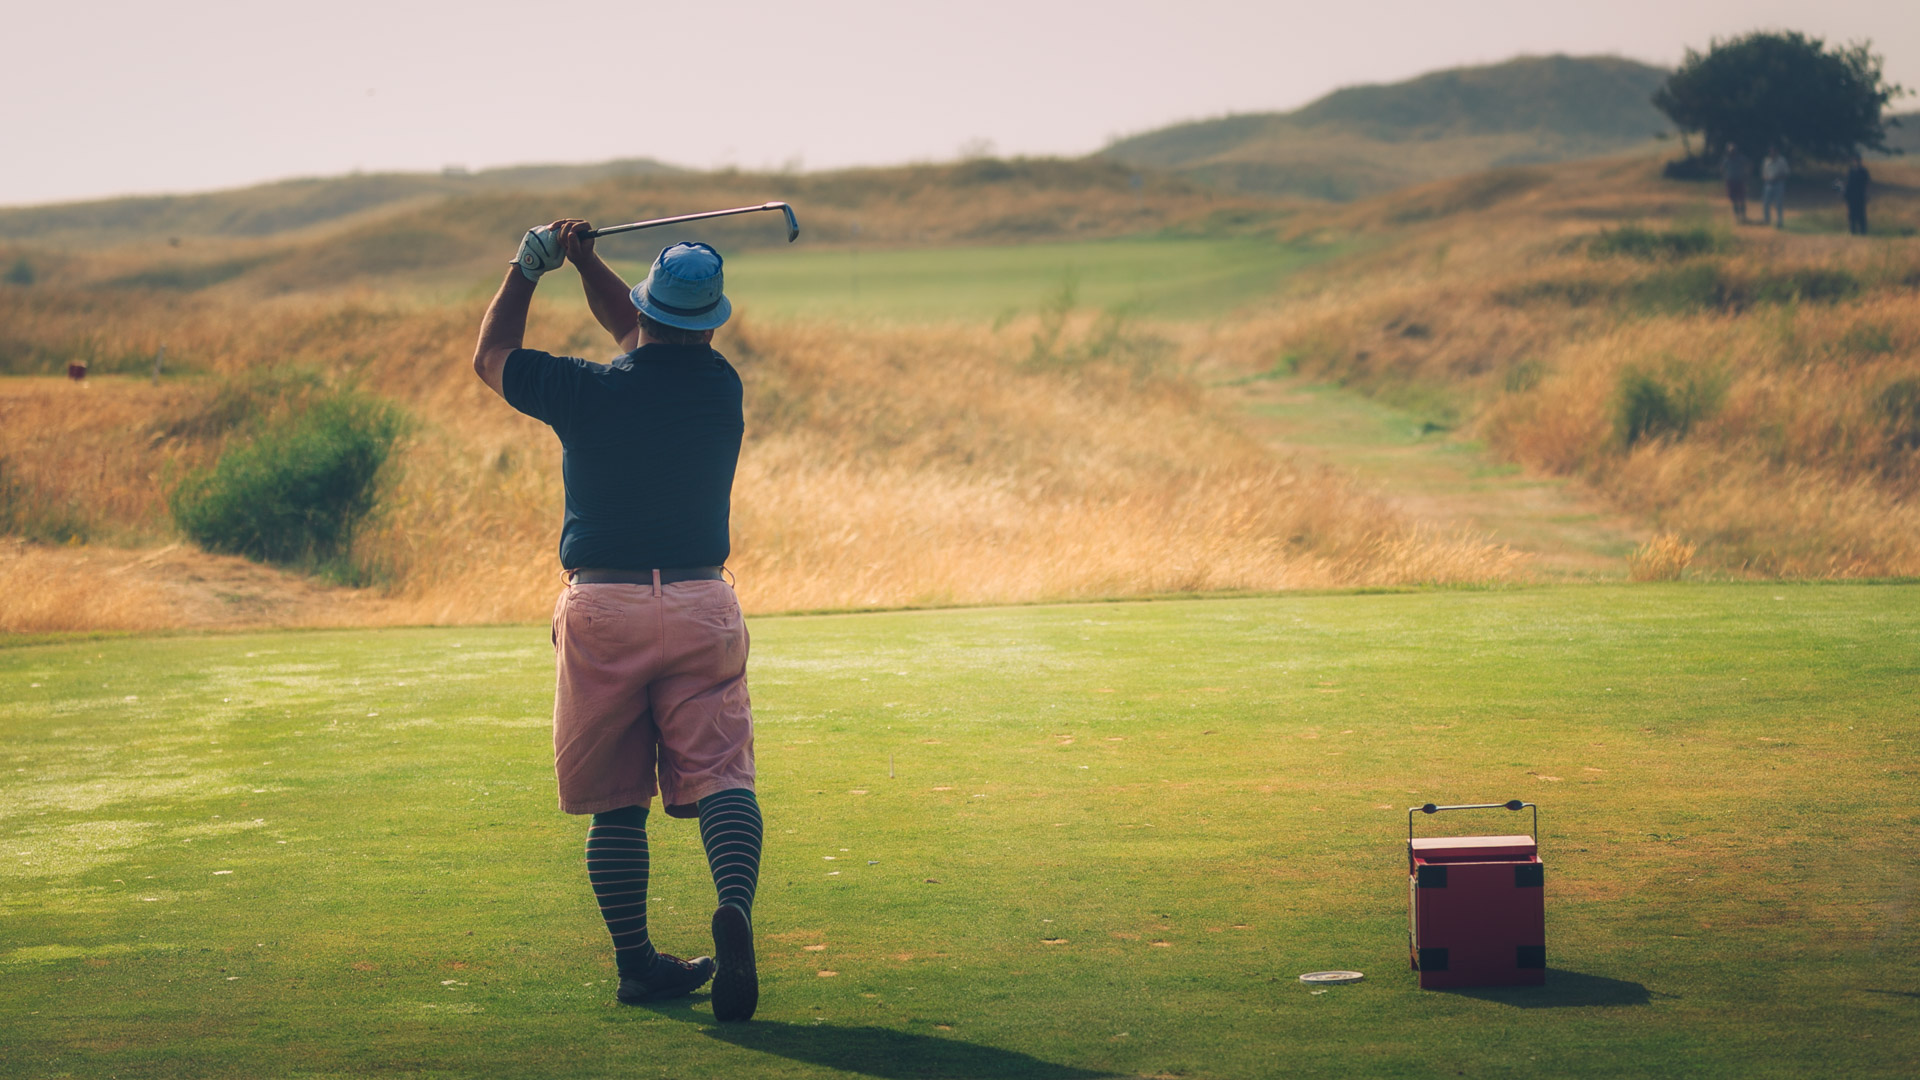 A-Day-At-Royal-St-Georges-Golf-Club0650-Edit